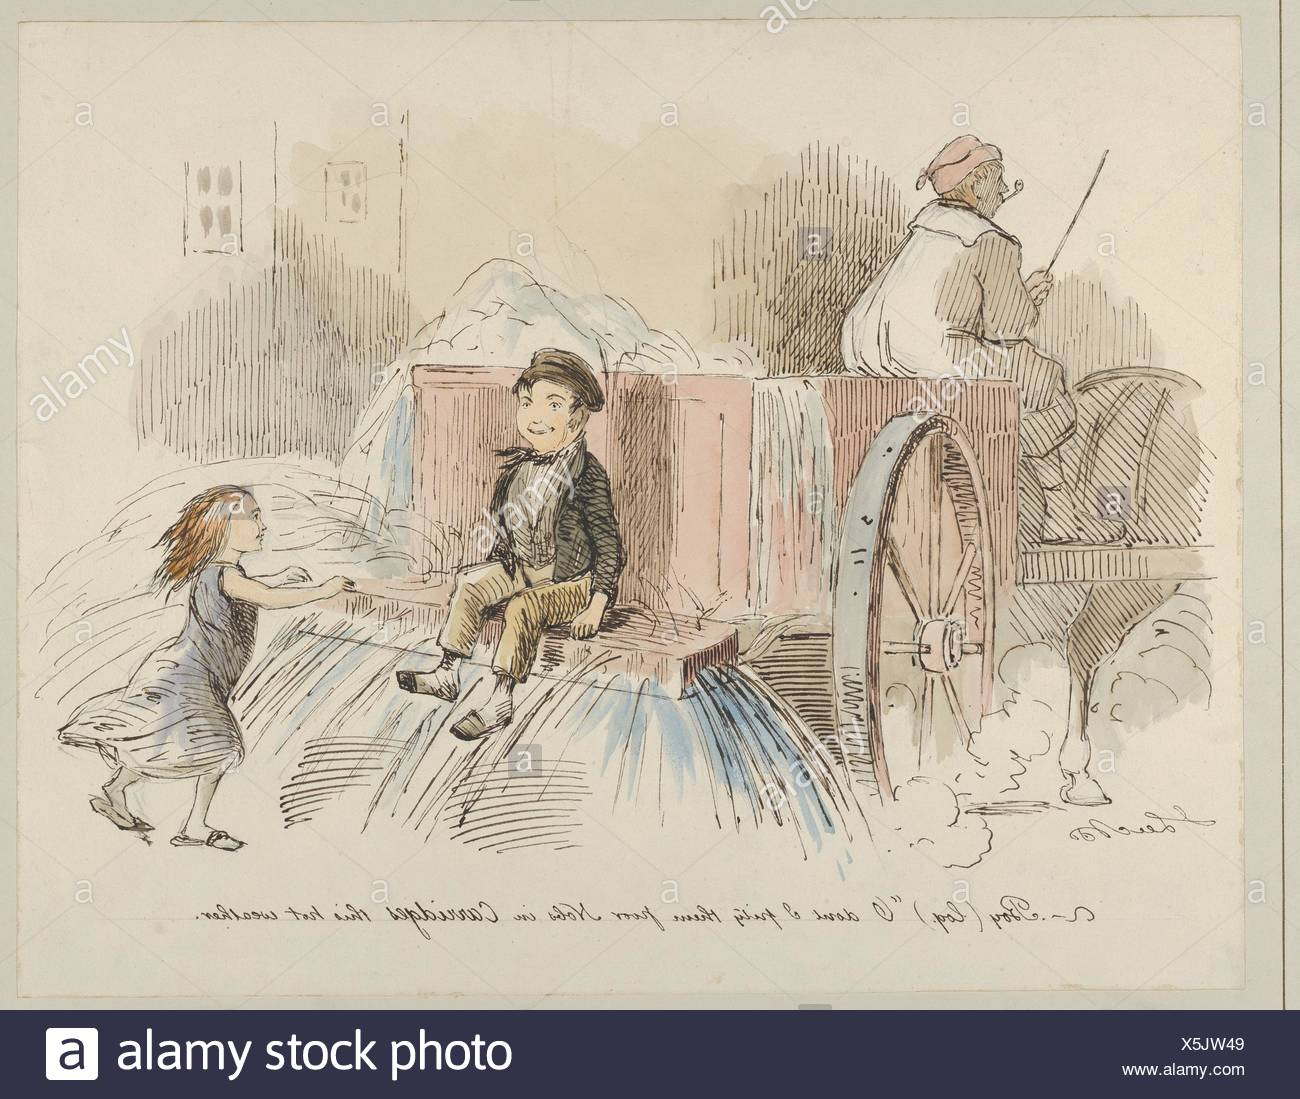 Boy (loq.) O don't I pity them poor Nobs in Carriages this hot weather. Artist: John Leech (British, London 1817-1864 London); Date: 1830-64; Medium: - Stock Image